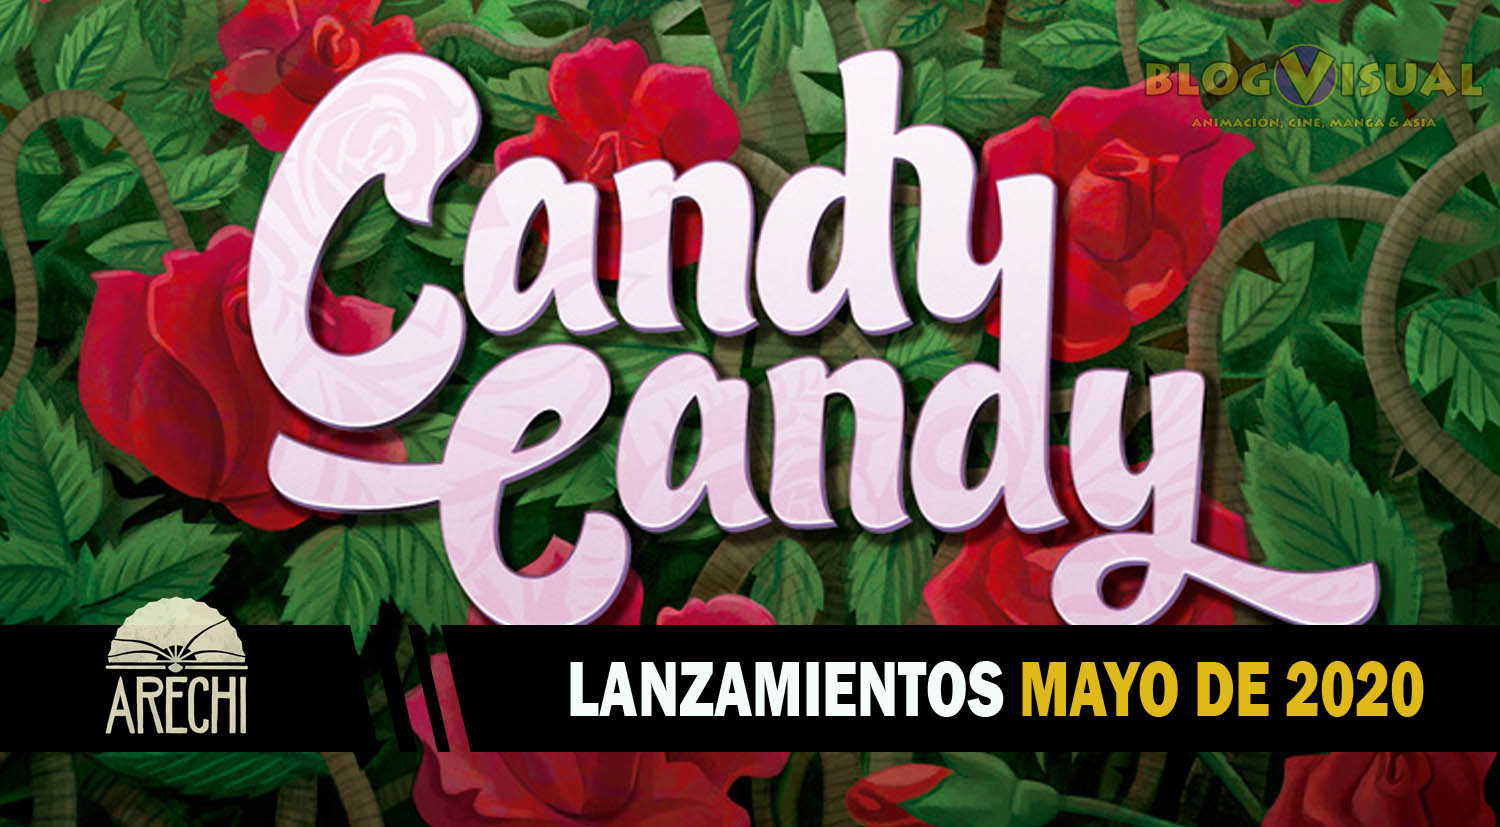 ARECHI-BANNER-5-2020-CANDY.jpg